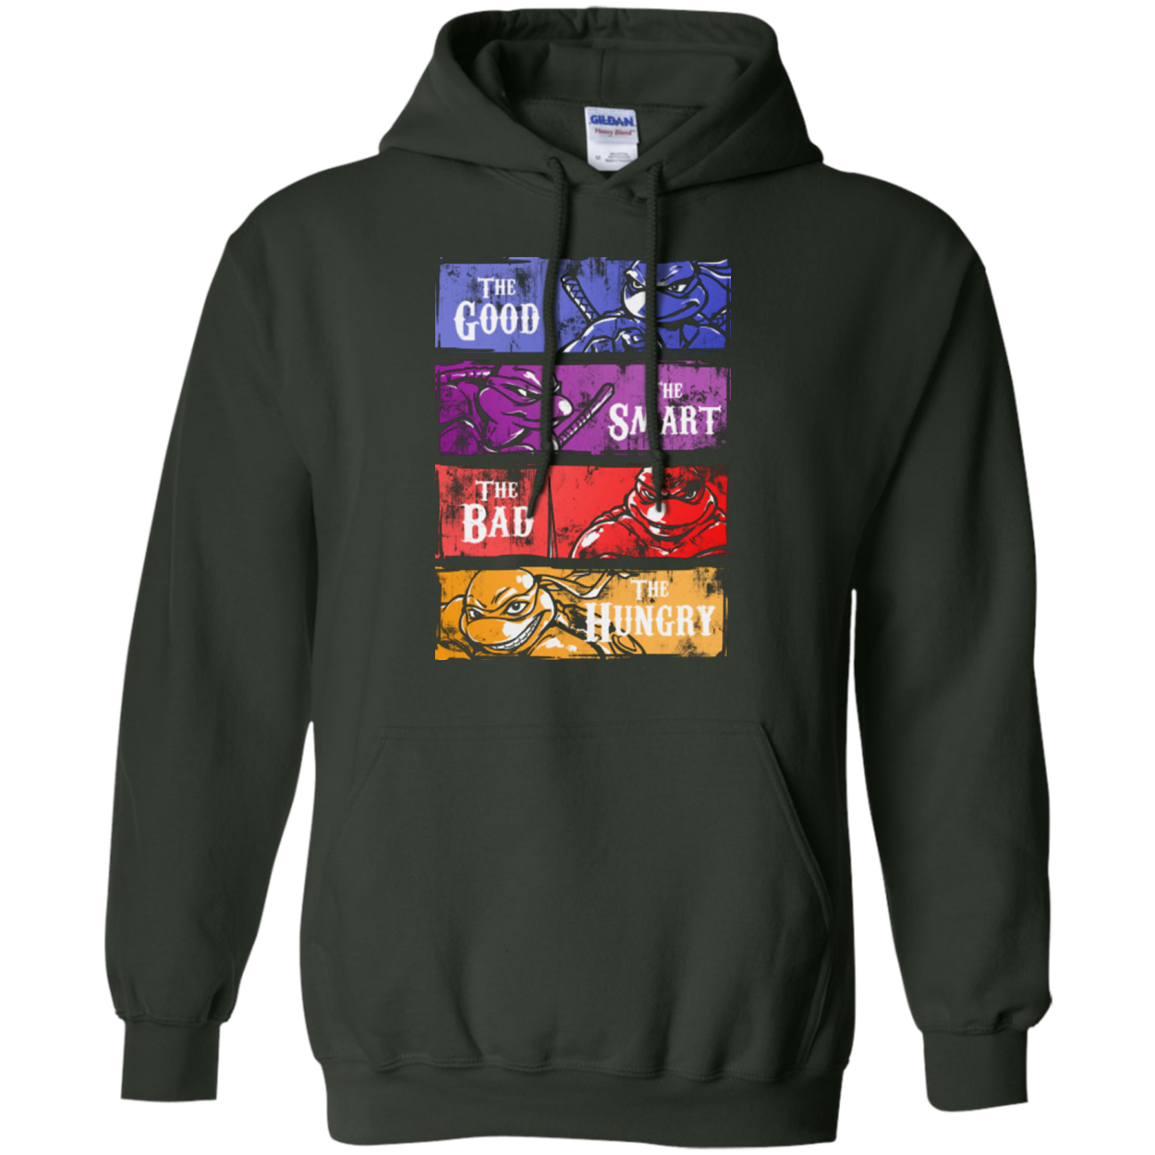 The Good, Bad, Smart and Hungry Pullover Hoodie